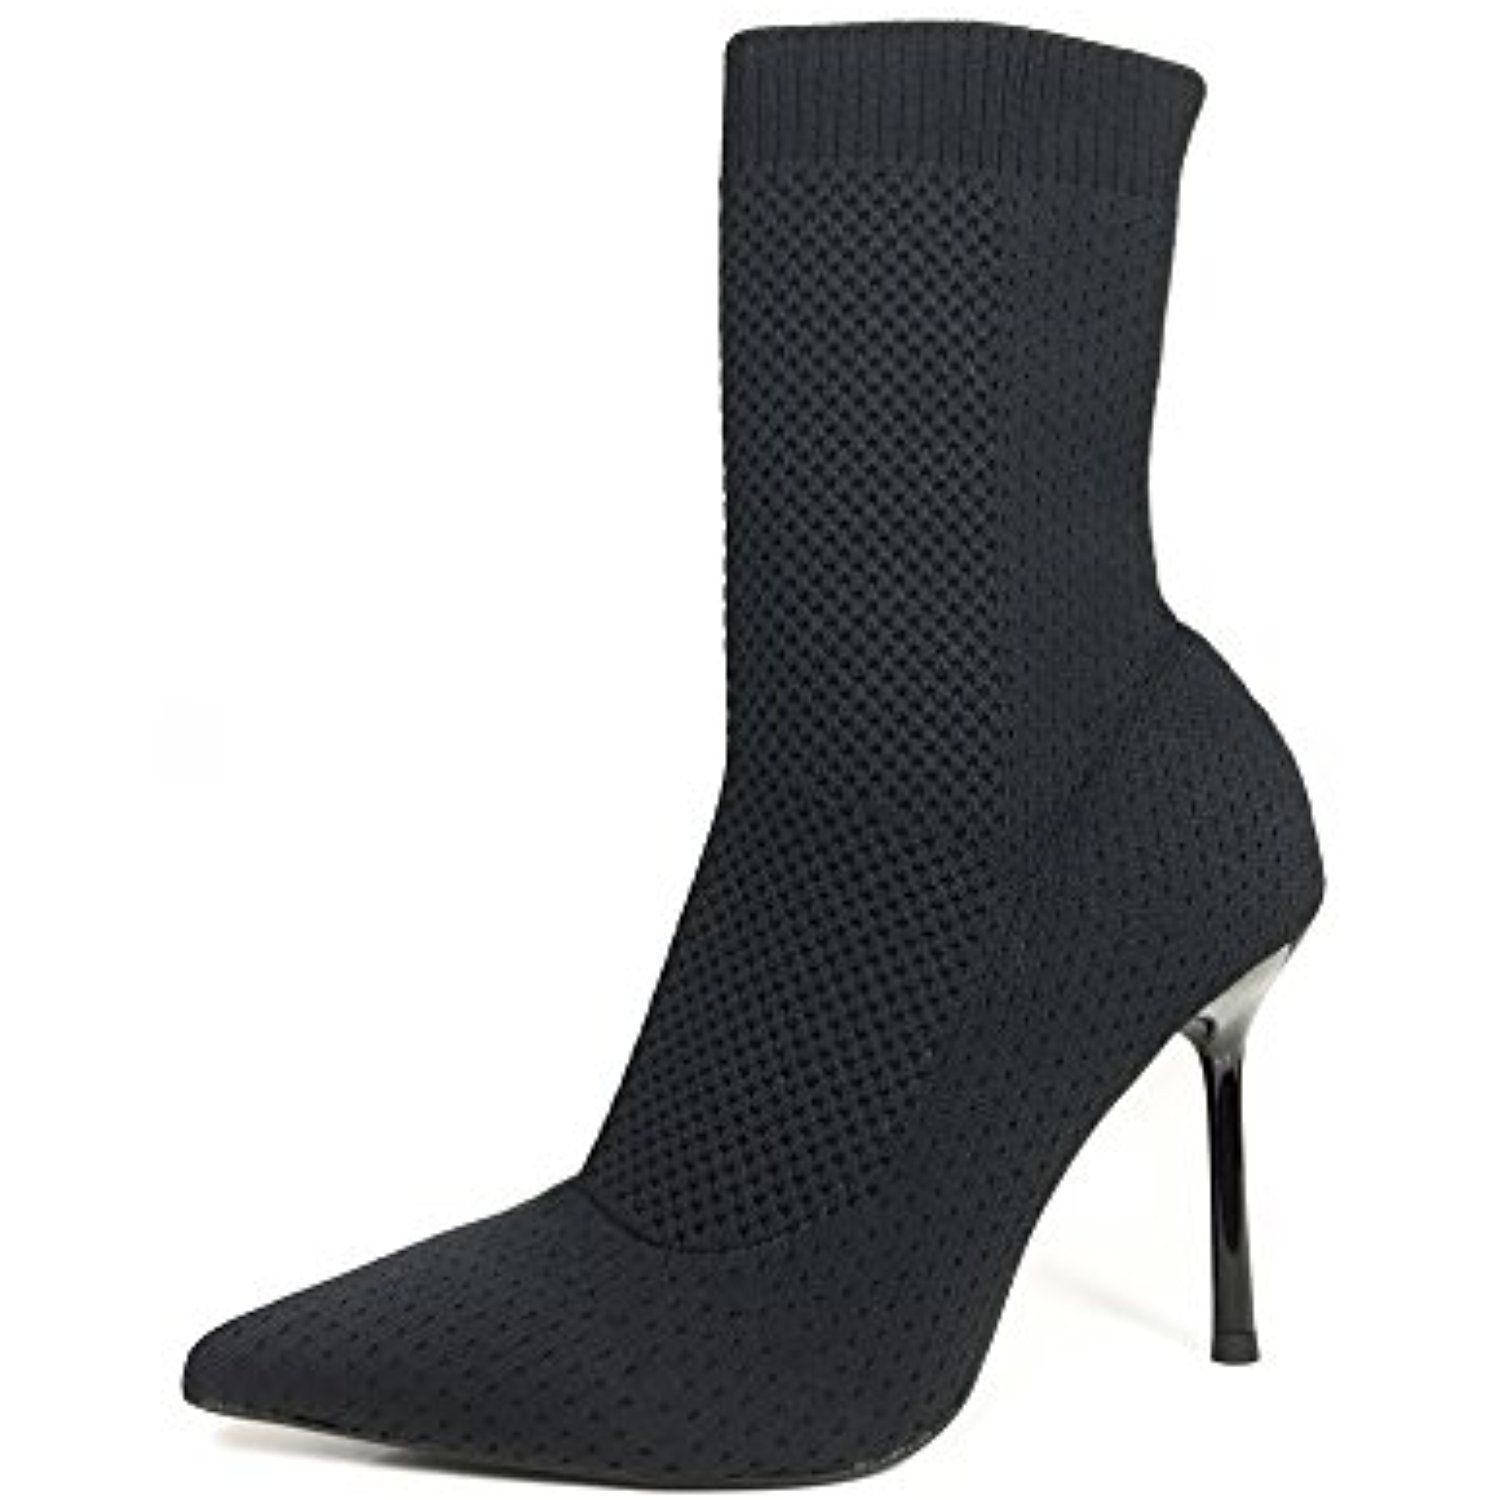 Women Stretch fabric high heel ankle boots 7148/201